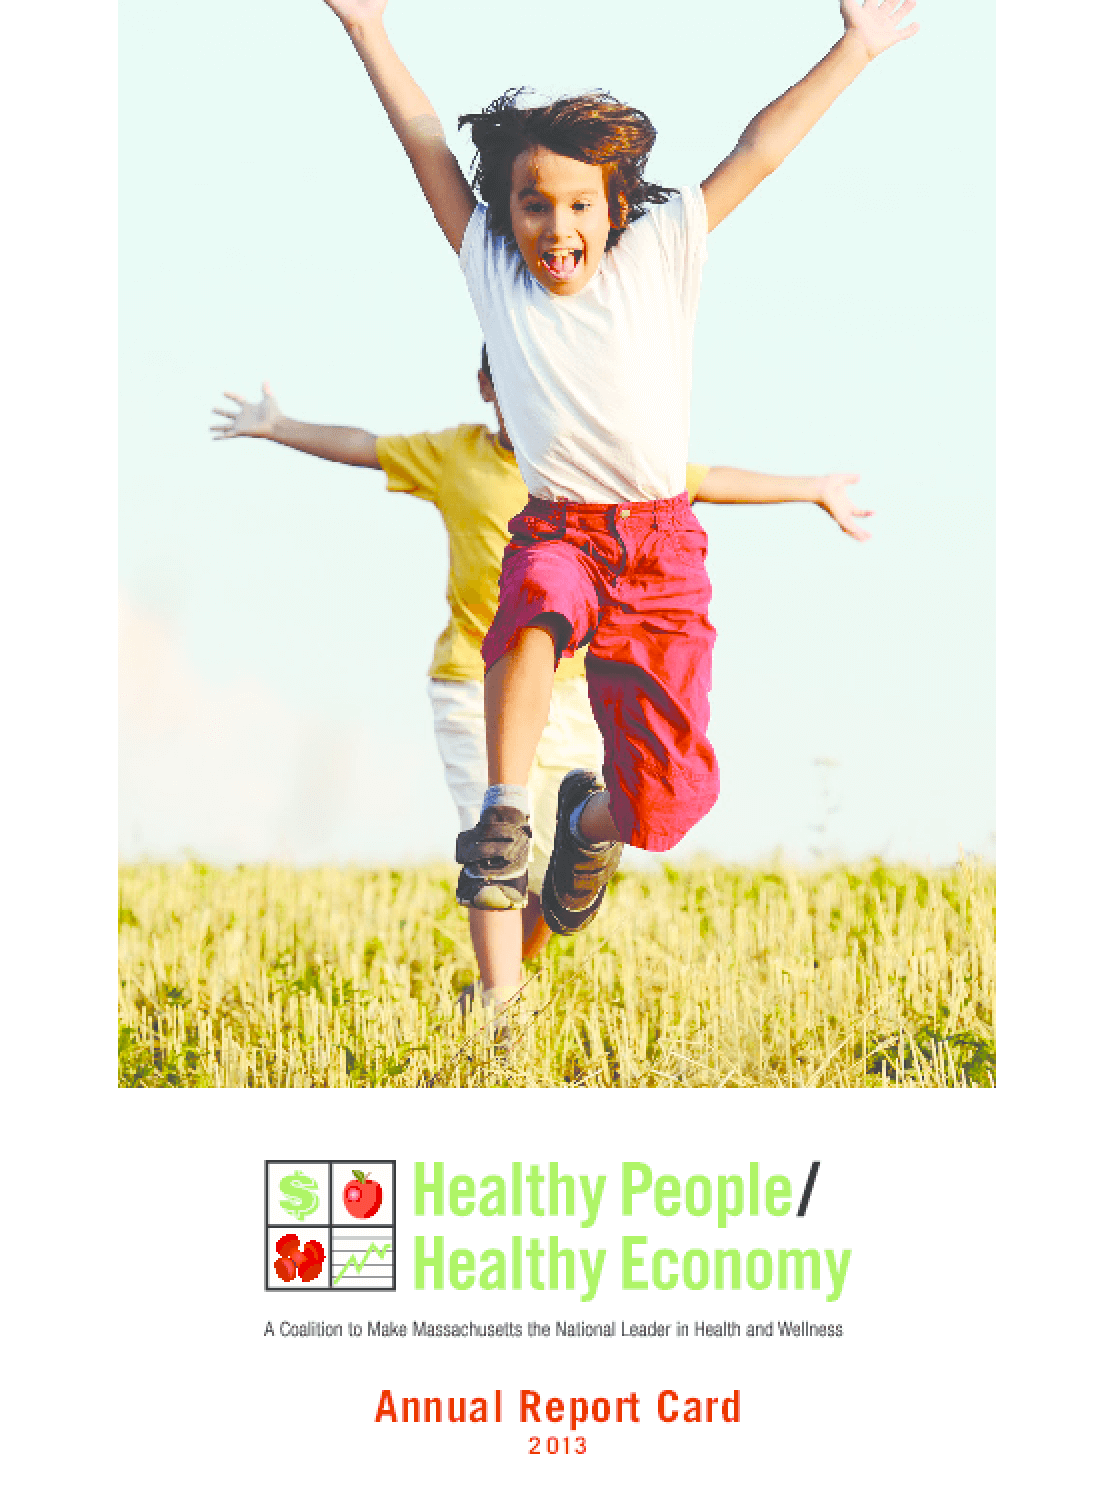 Healthy People/ Healthy Economy: A Coalition to Make Massachusetts the National Leader in Health and Wellness - 2013 Annual Report Card